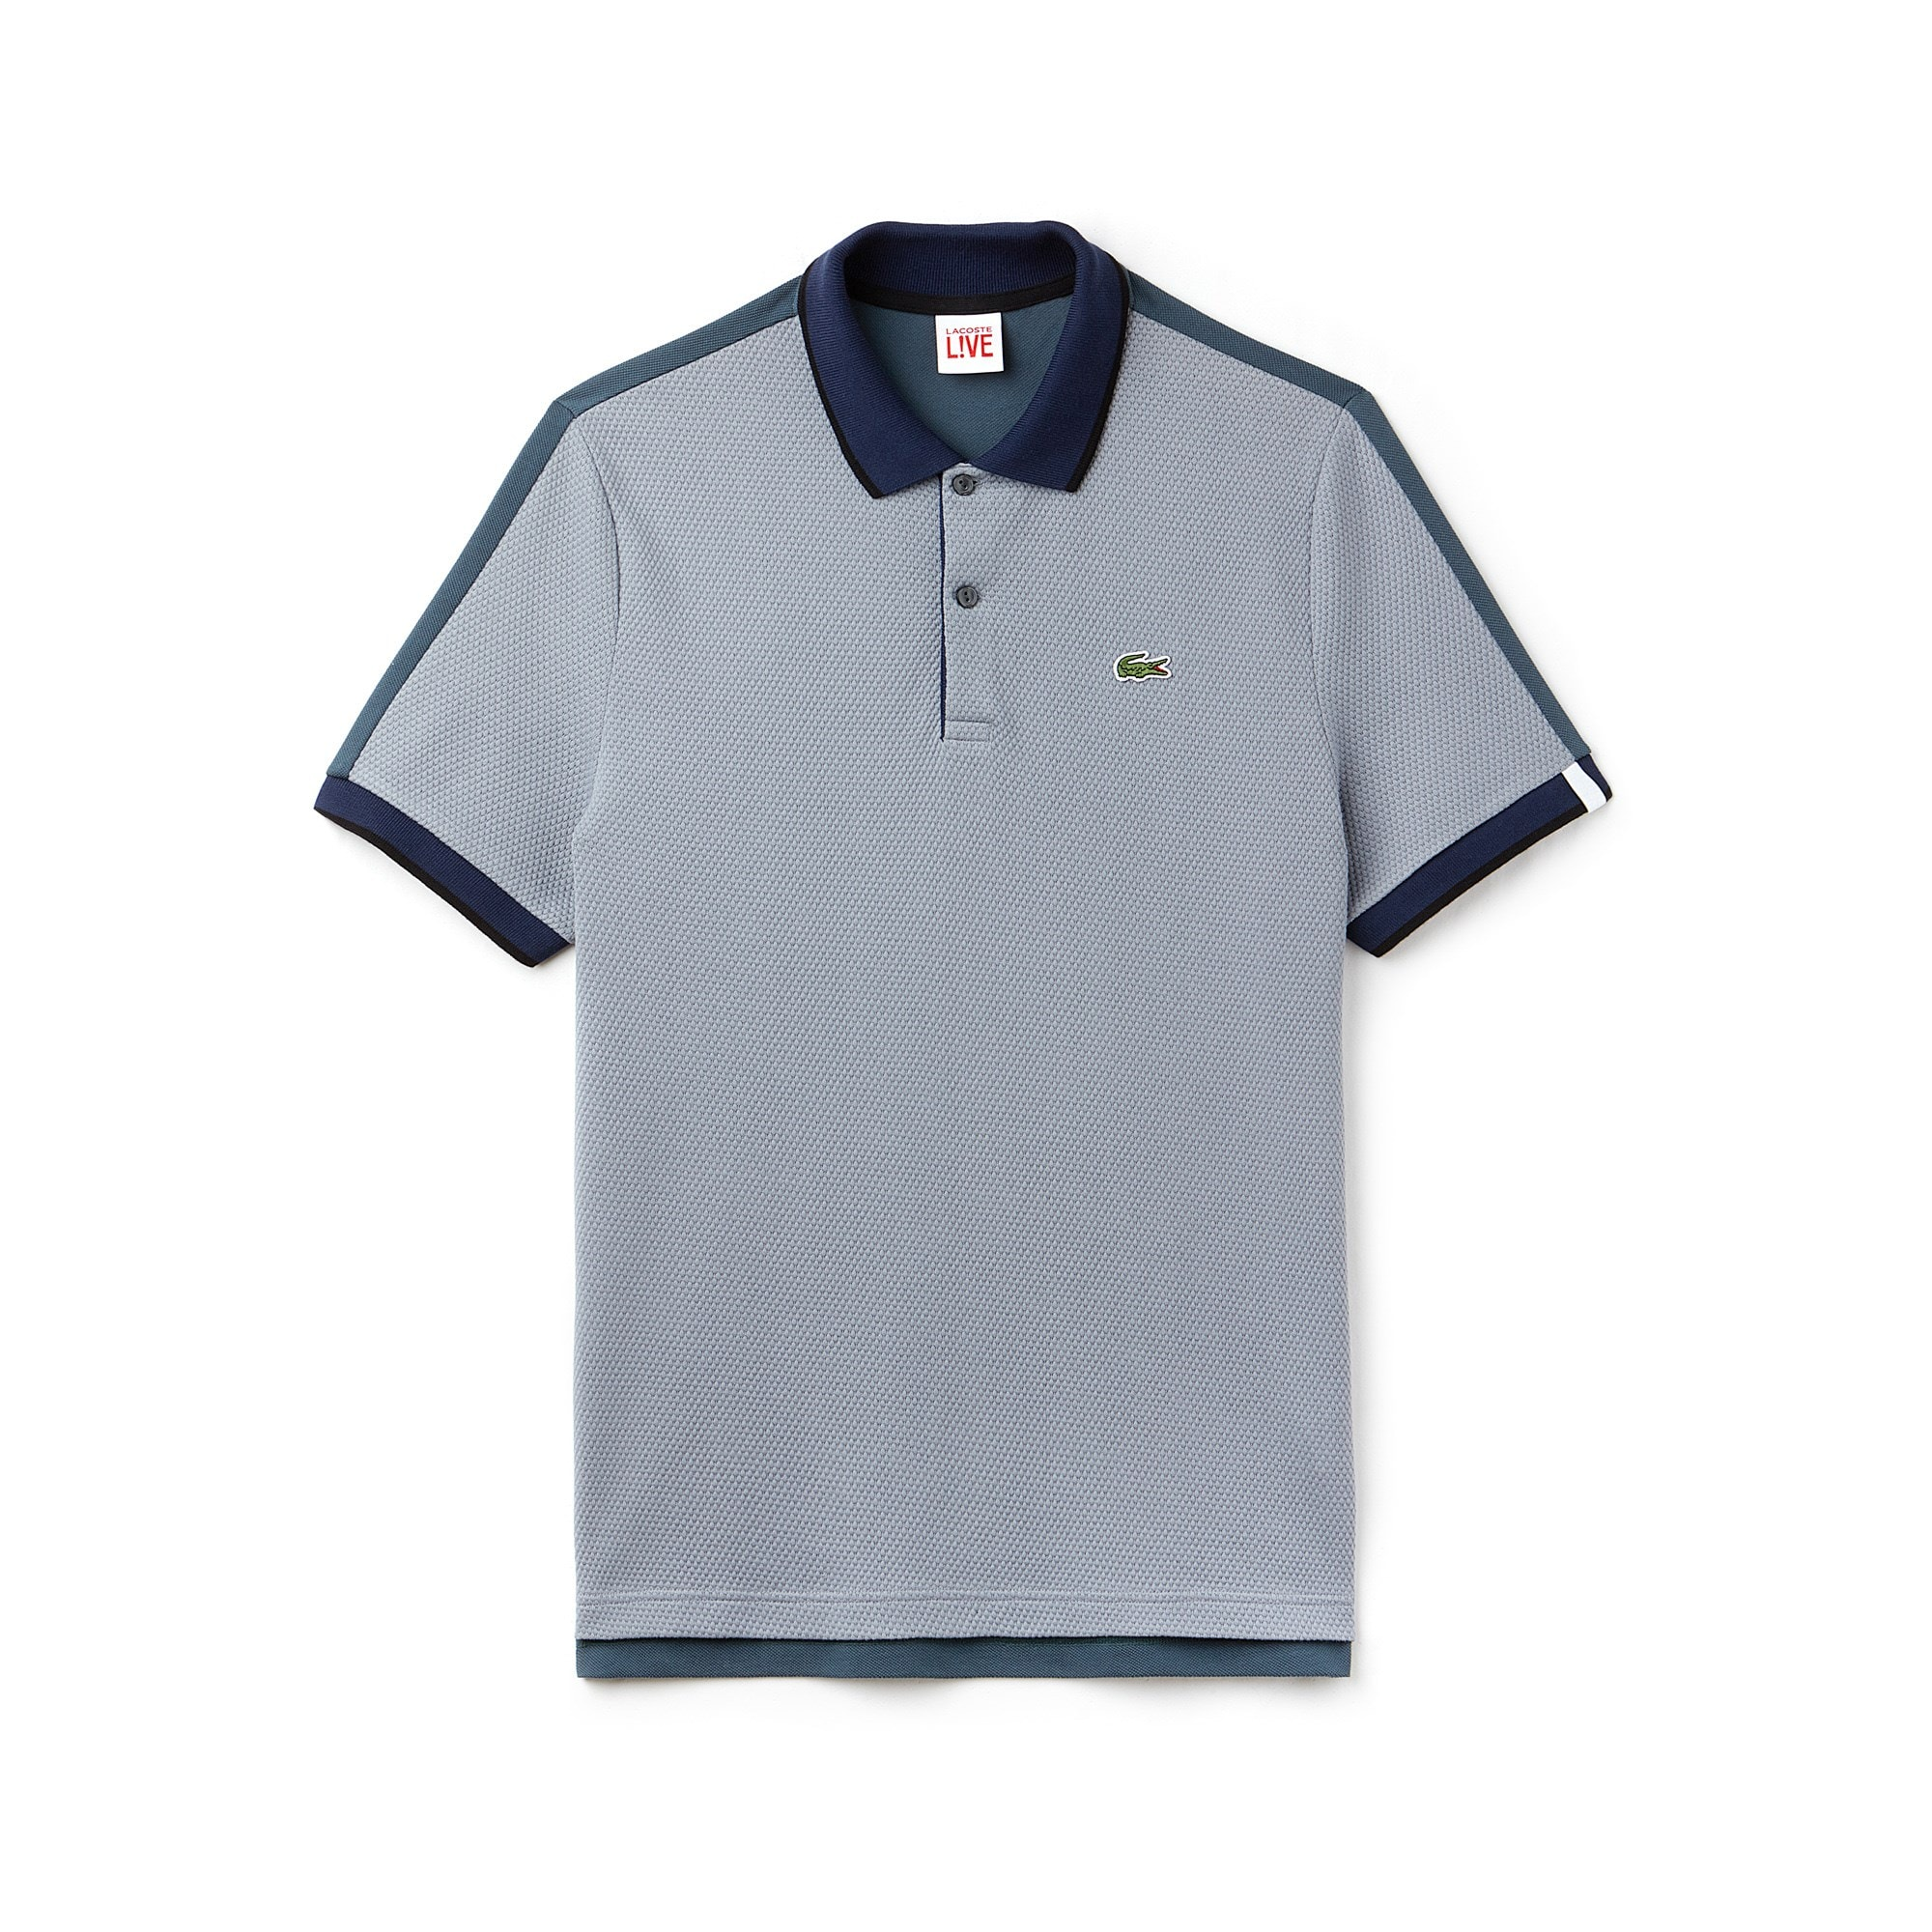 Slim Fit Herren-Polo aus Baumwolle mit Colorblocks LACOSTE L!VE